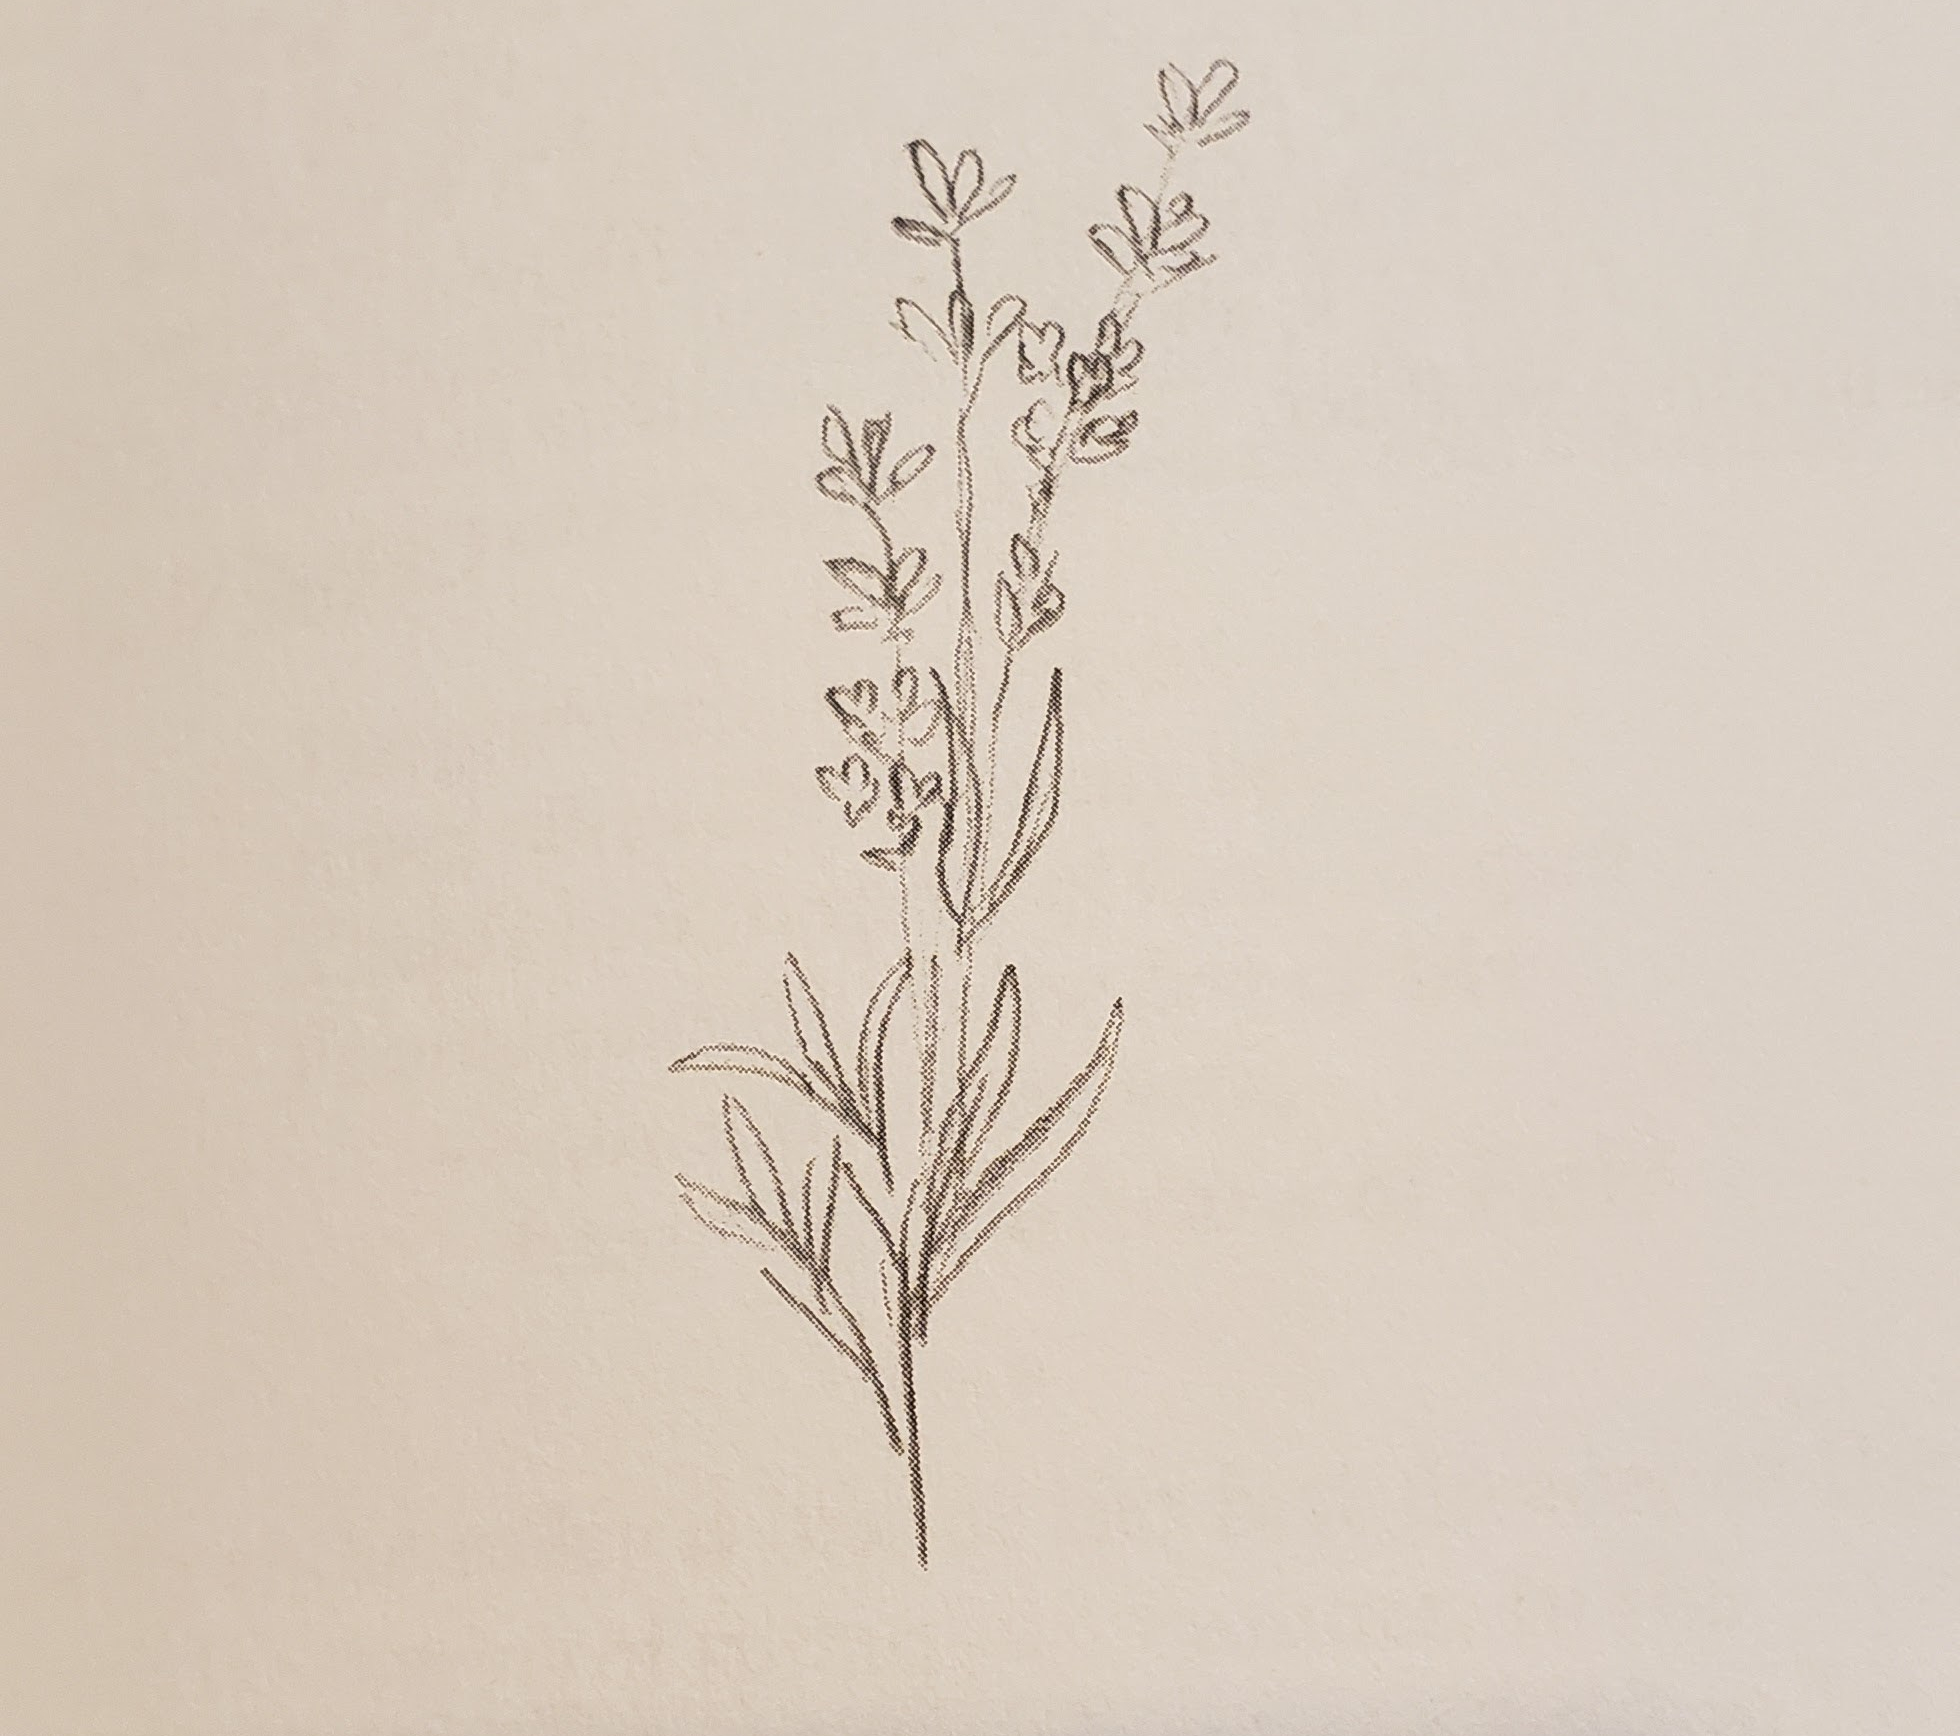 A simple drawing of a lavender plant